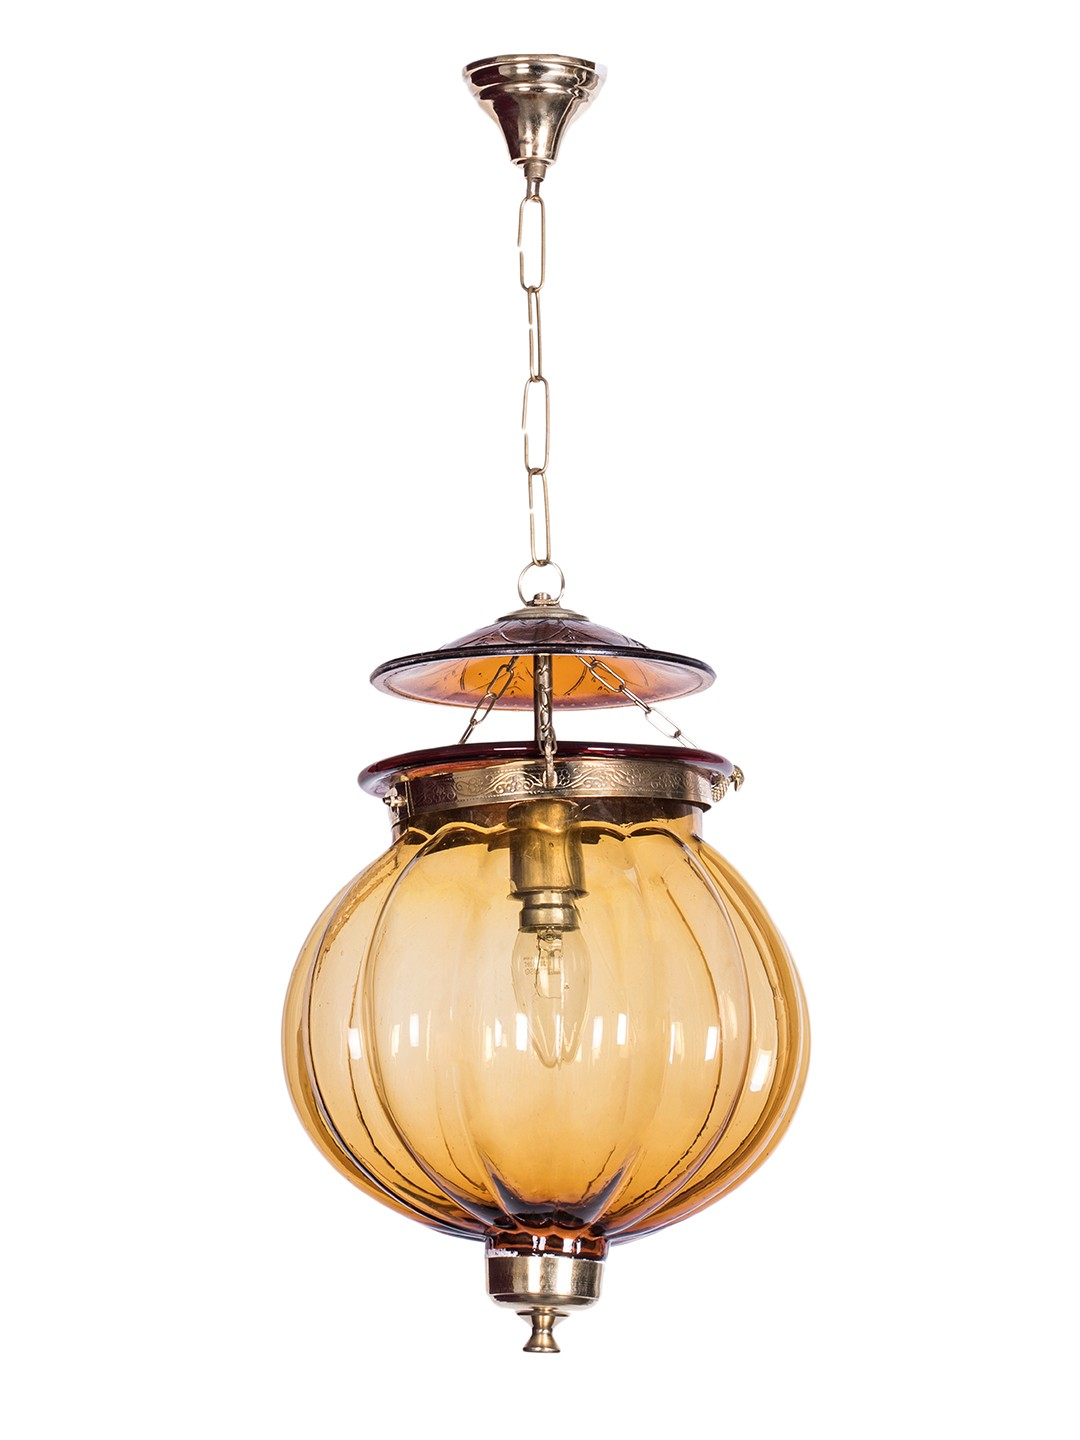 Goan Melon Handi Lantern Hanging Light - Amber